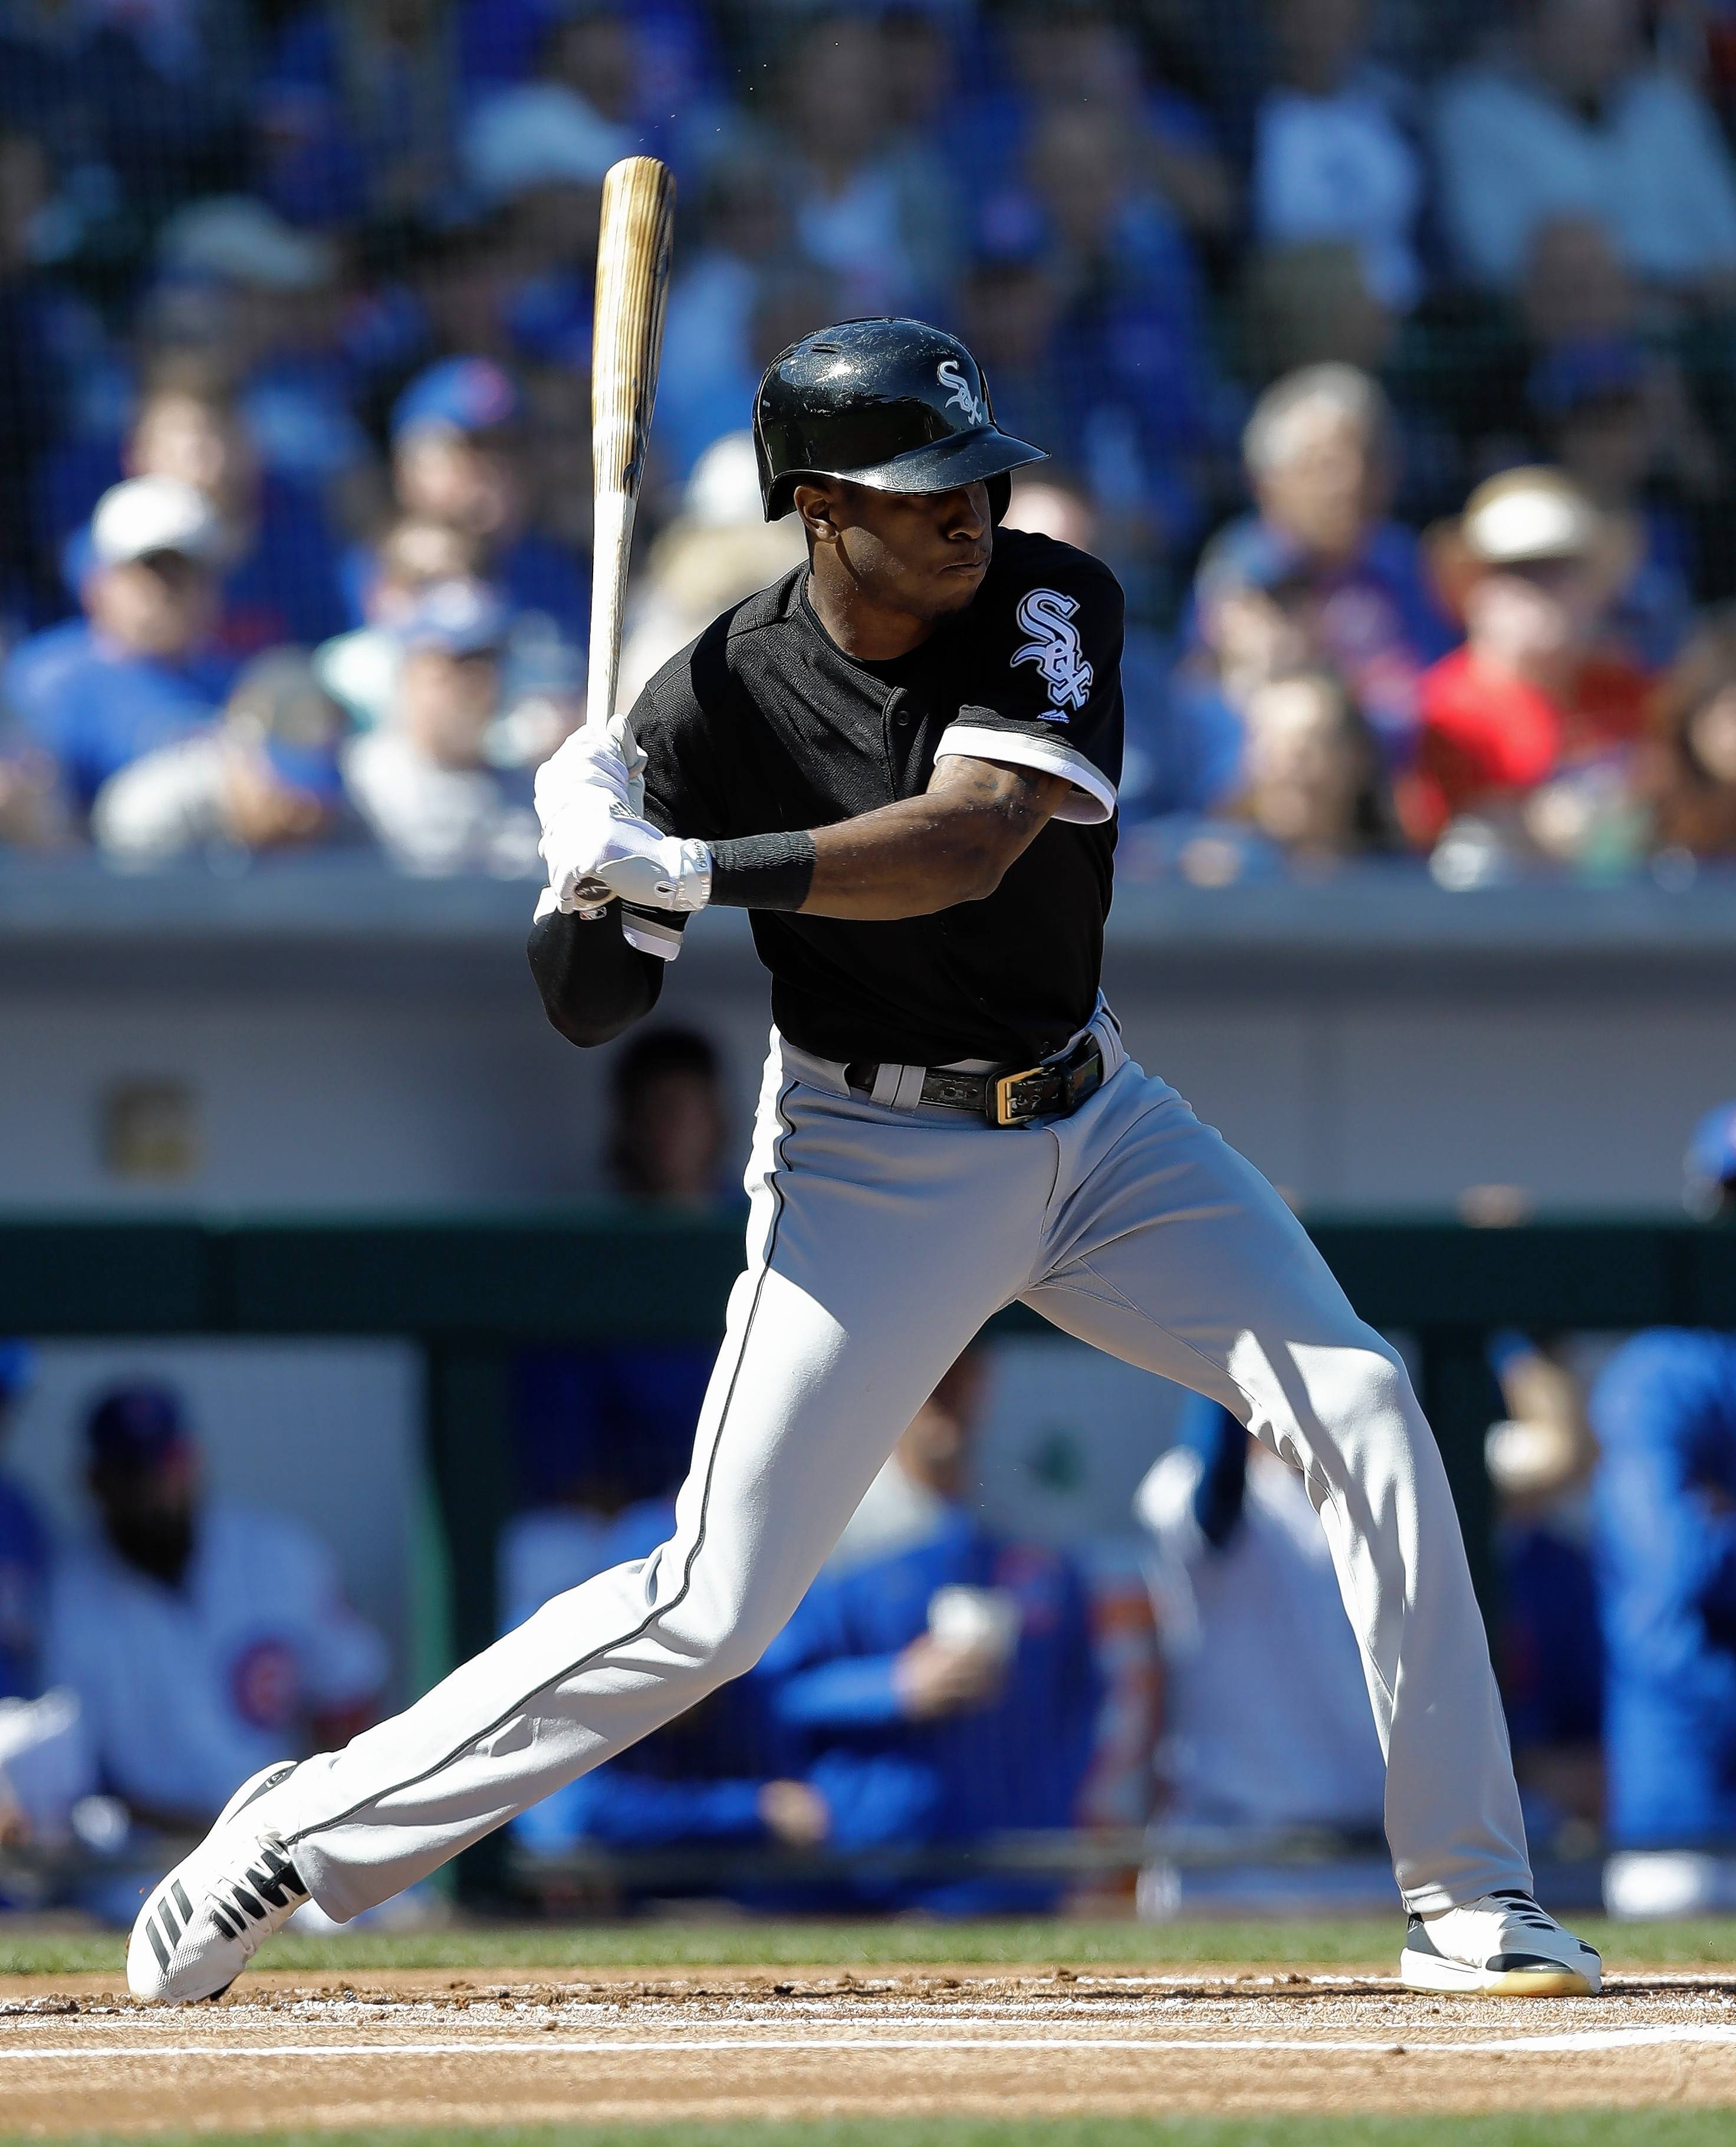 Anderson at the forefront of White Sox's youth movement